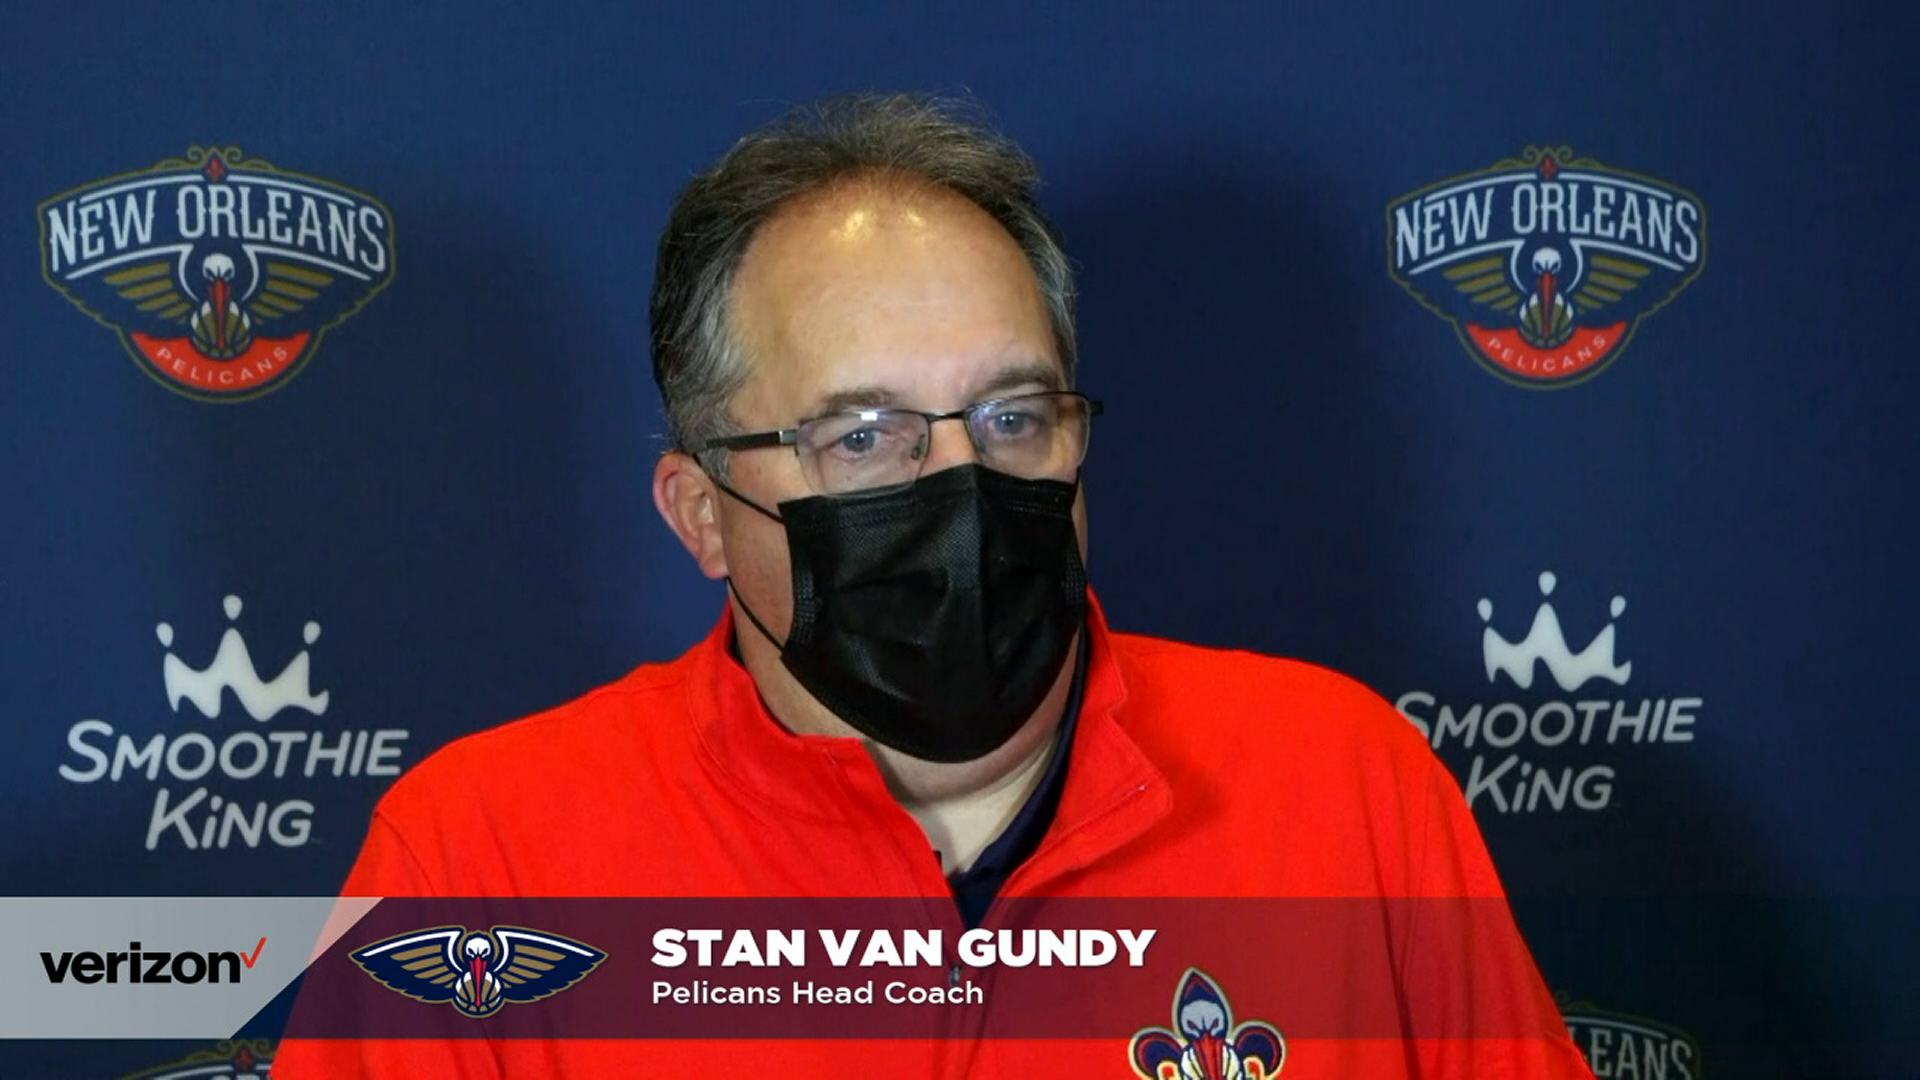 Pelicans-Wizards Postgame Interview: Stan Van Gundy 1-27-21